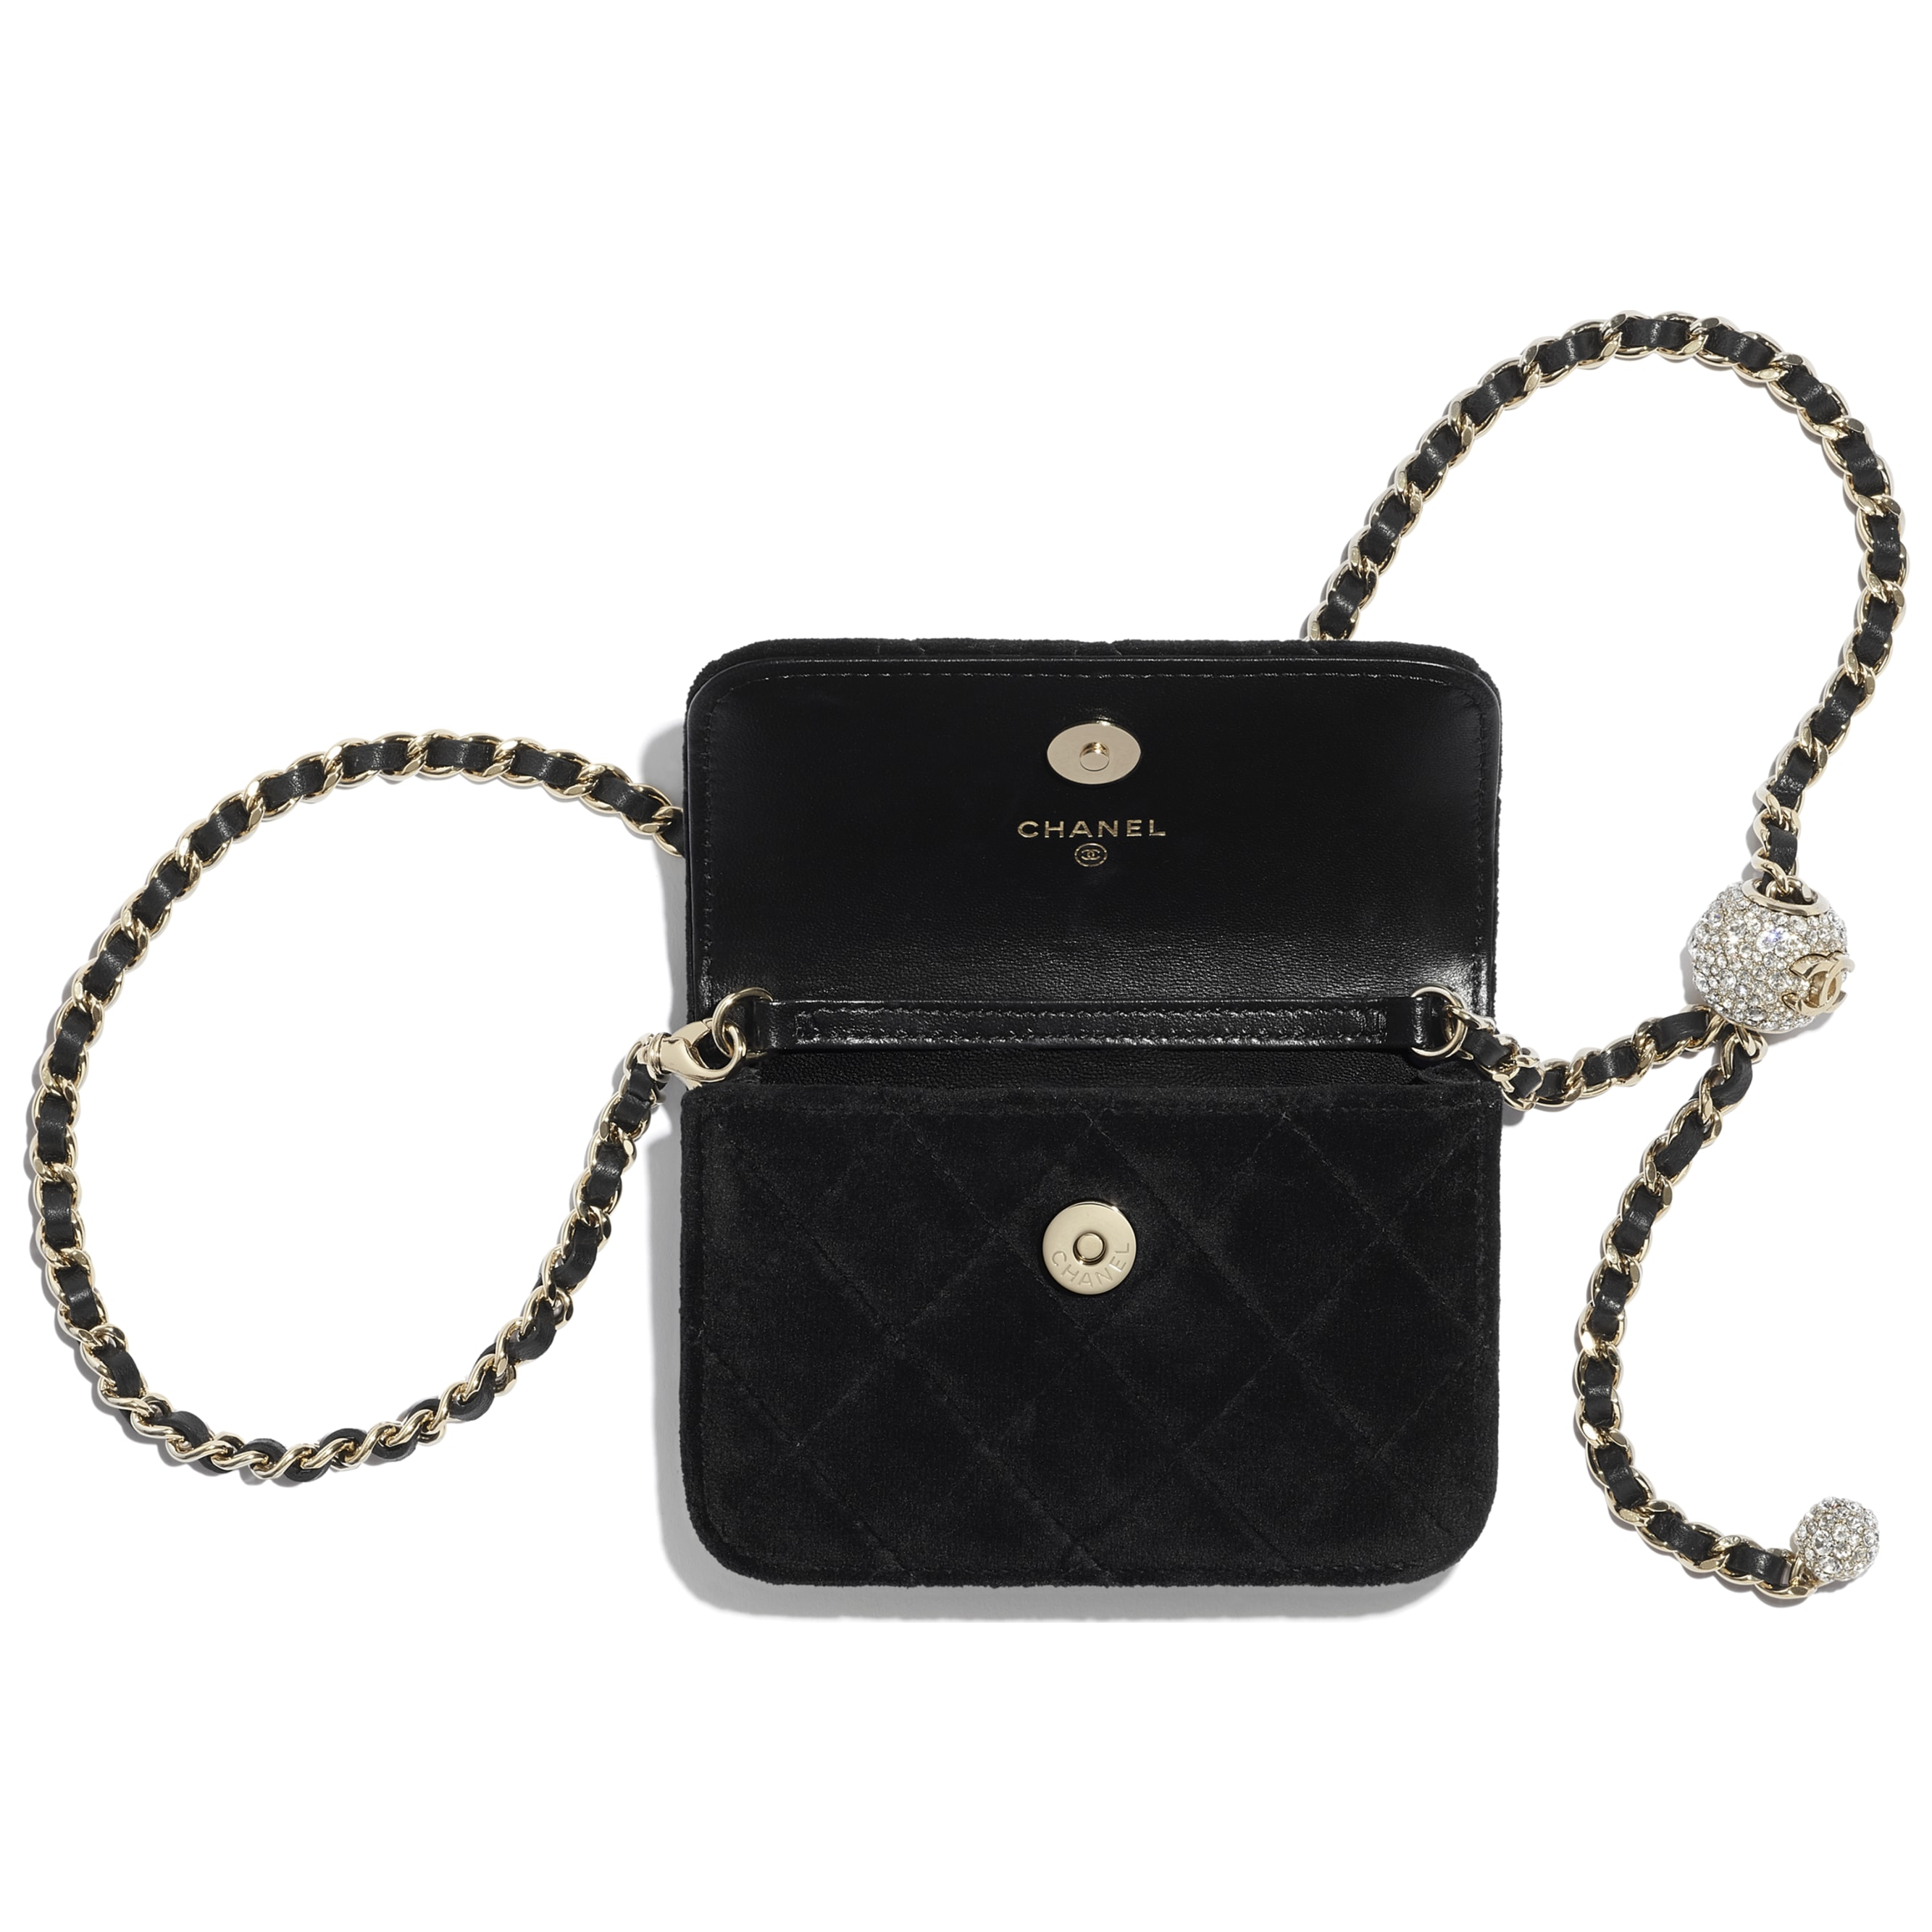 Clutch With Chain - Black - Velvet, Diamanté & Silver-Tone Metal - CHANEL - Alternative view - see standard sized version